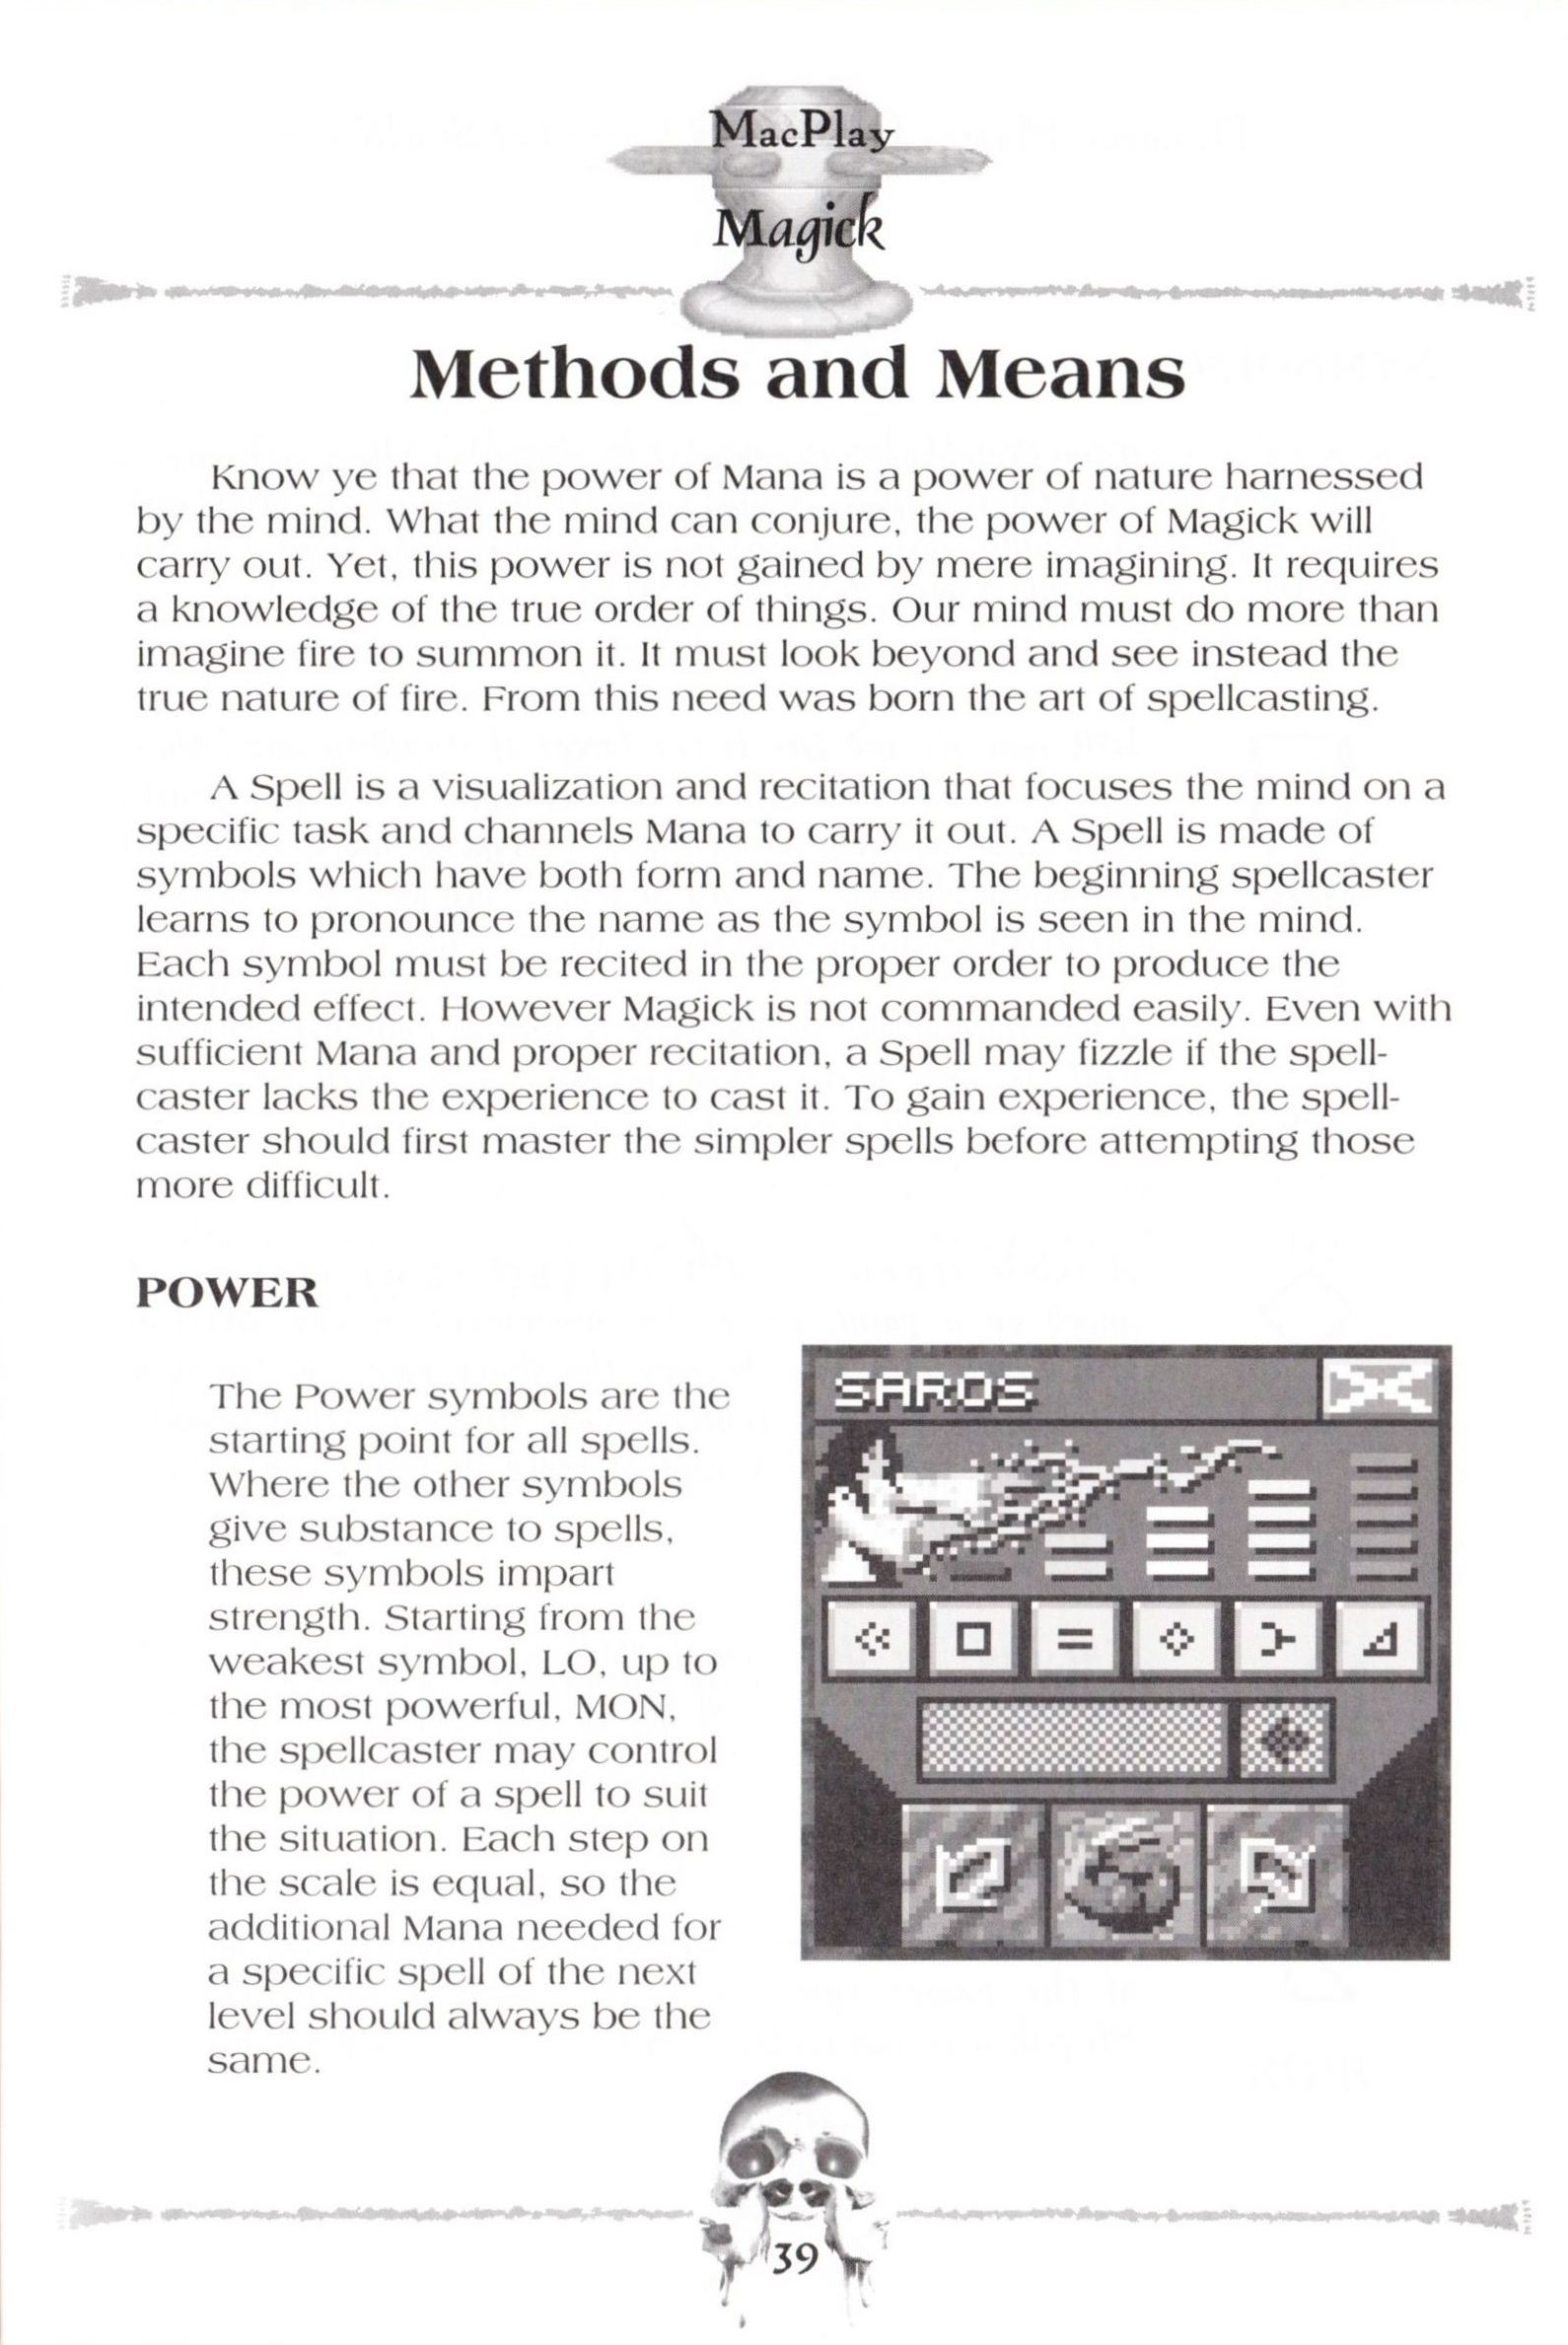 Game - Dungeon Master II - US - Macintosh - Manual - Page 041 - Scan